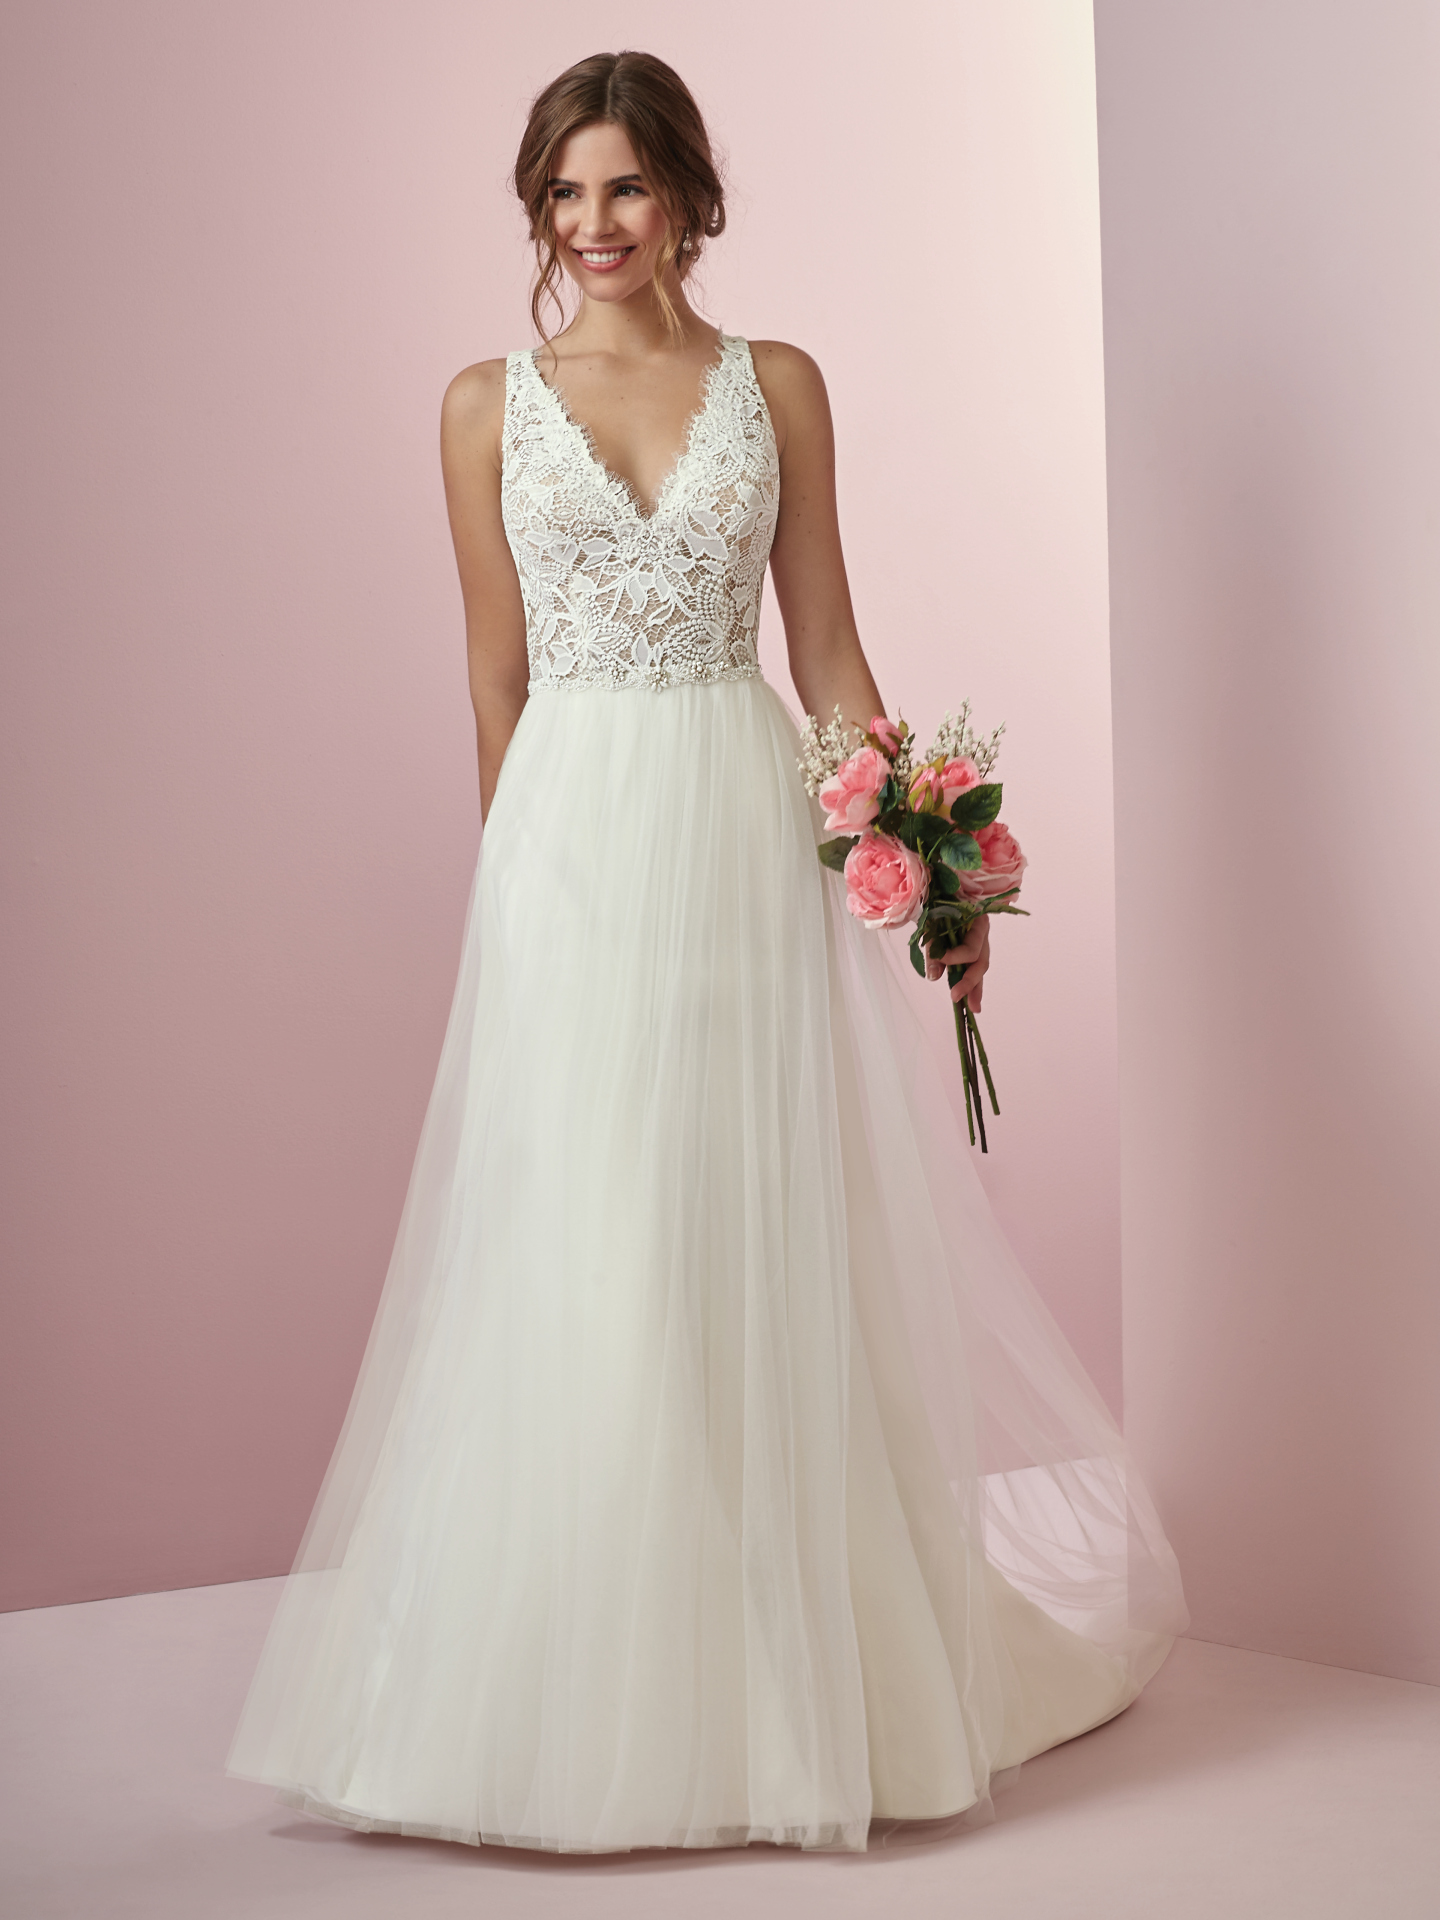 Seven Types of Lace To Know When Shopping For A Wedding Dress: Maggie Sottero's Lace Library. Connie wedding dress by Rebecca Ingram